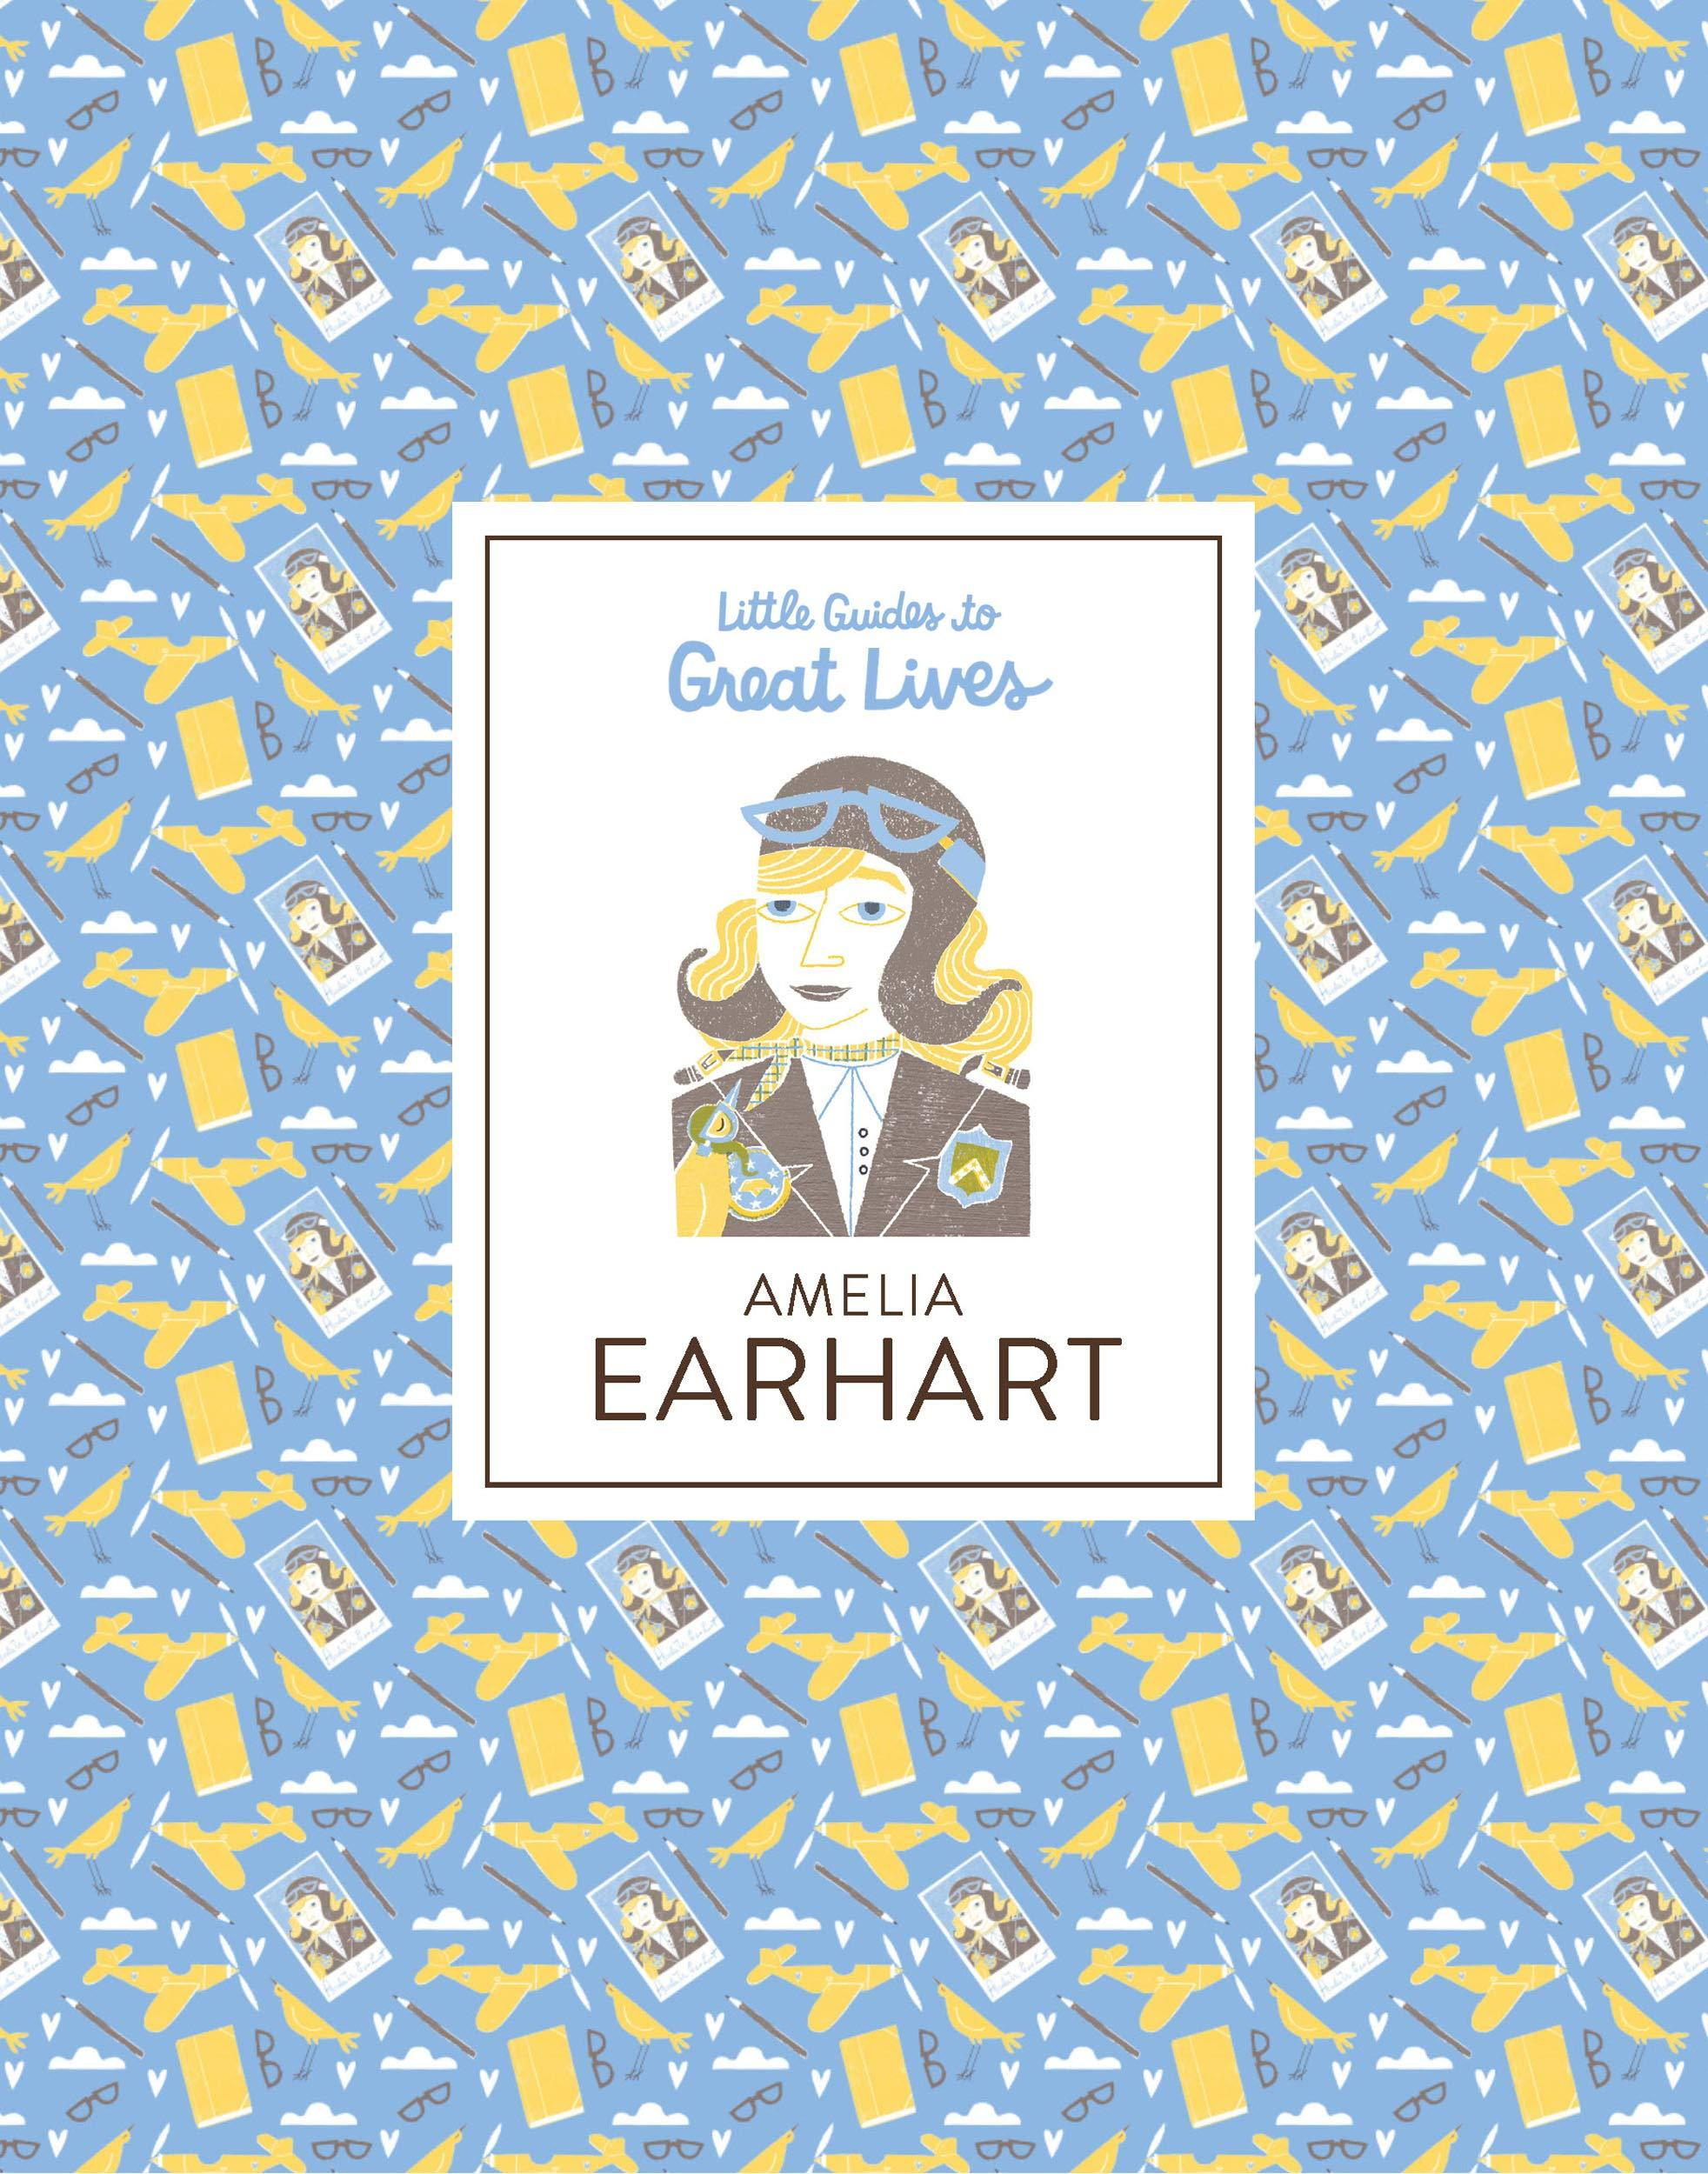 Amelia Earhart: Little Guides to Great Lives - Me Books Asia Store